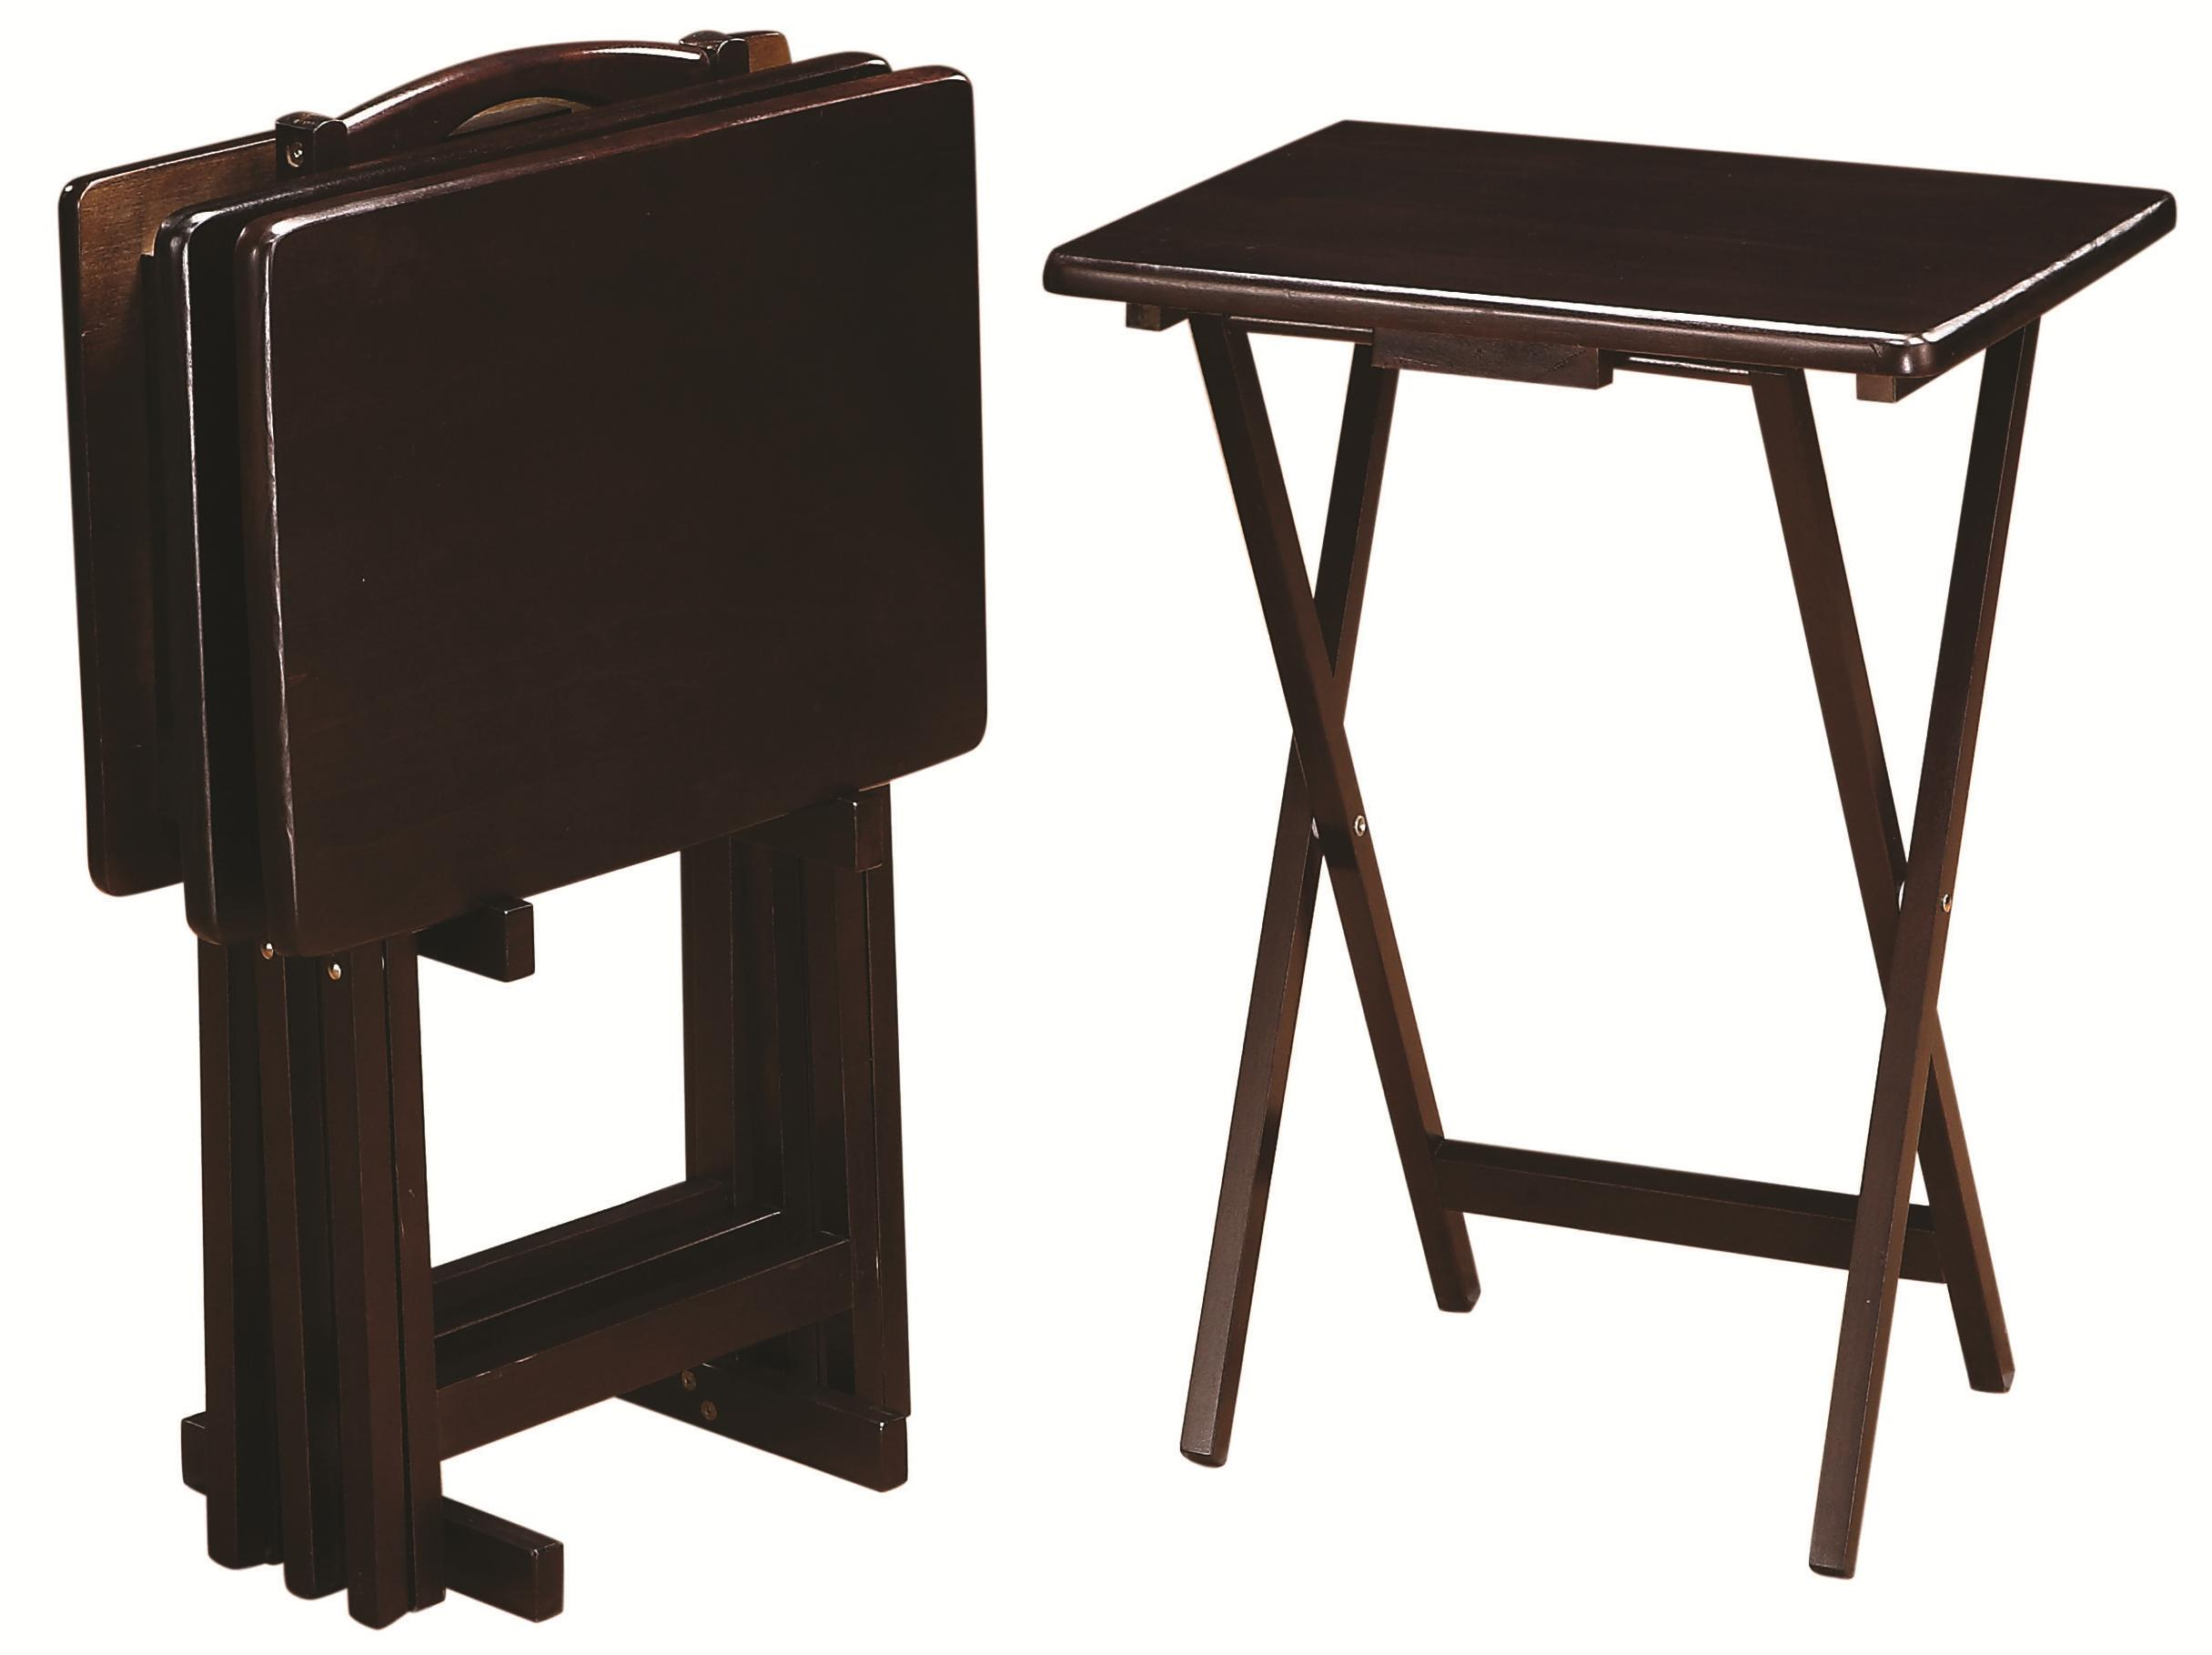 Tray Tables 5 Piece Tray Table Set by Coaster at Northeast Factory Direct